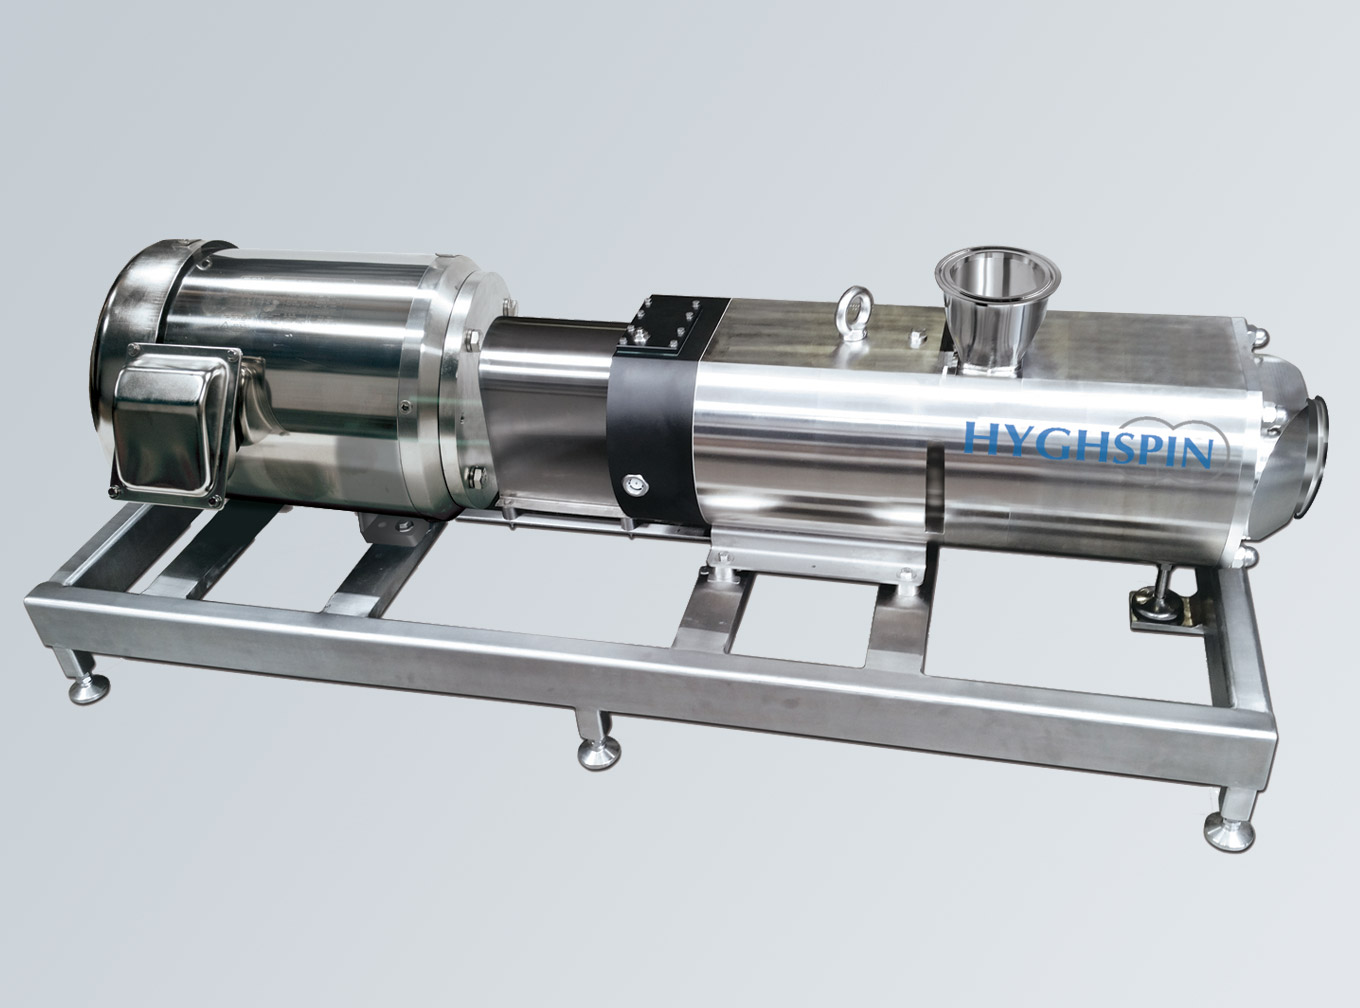 HYGHSPIN Extended on a stainless steel frame with hygienic stainless steel motor